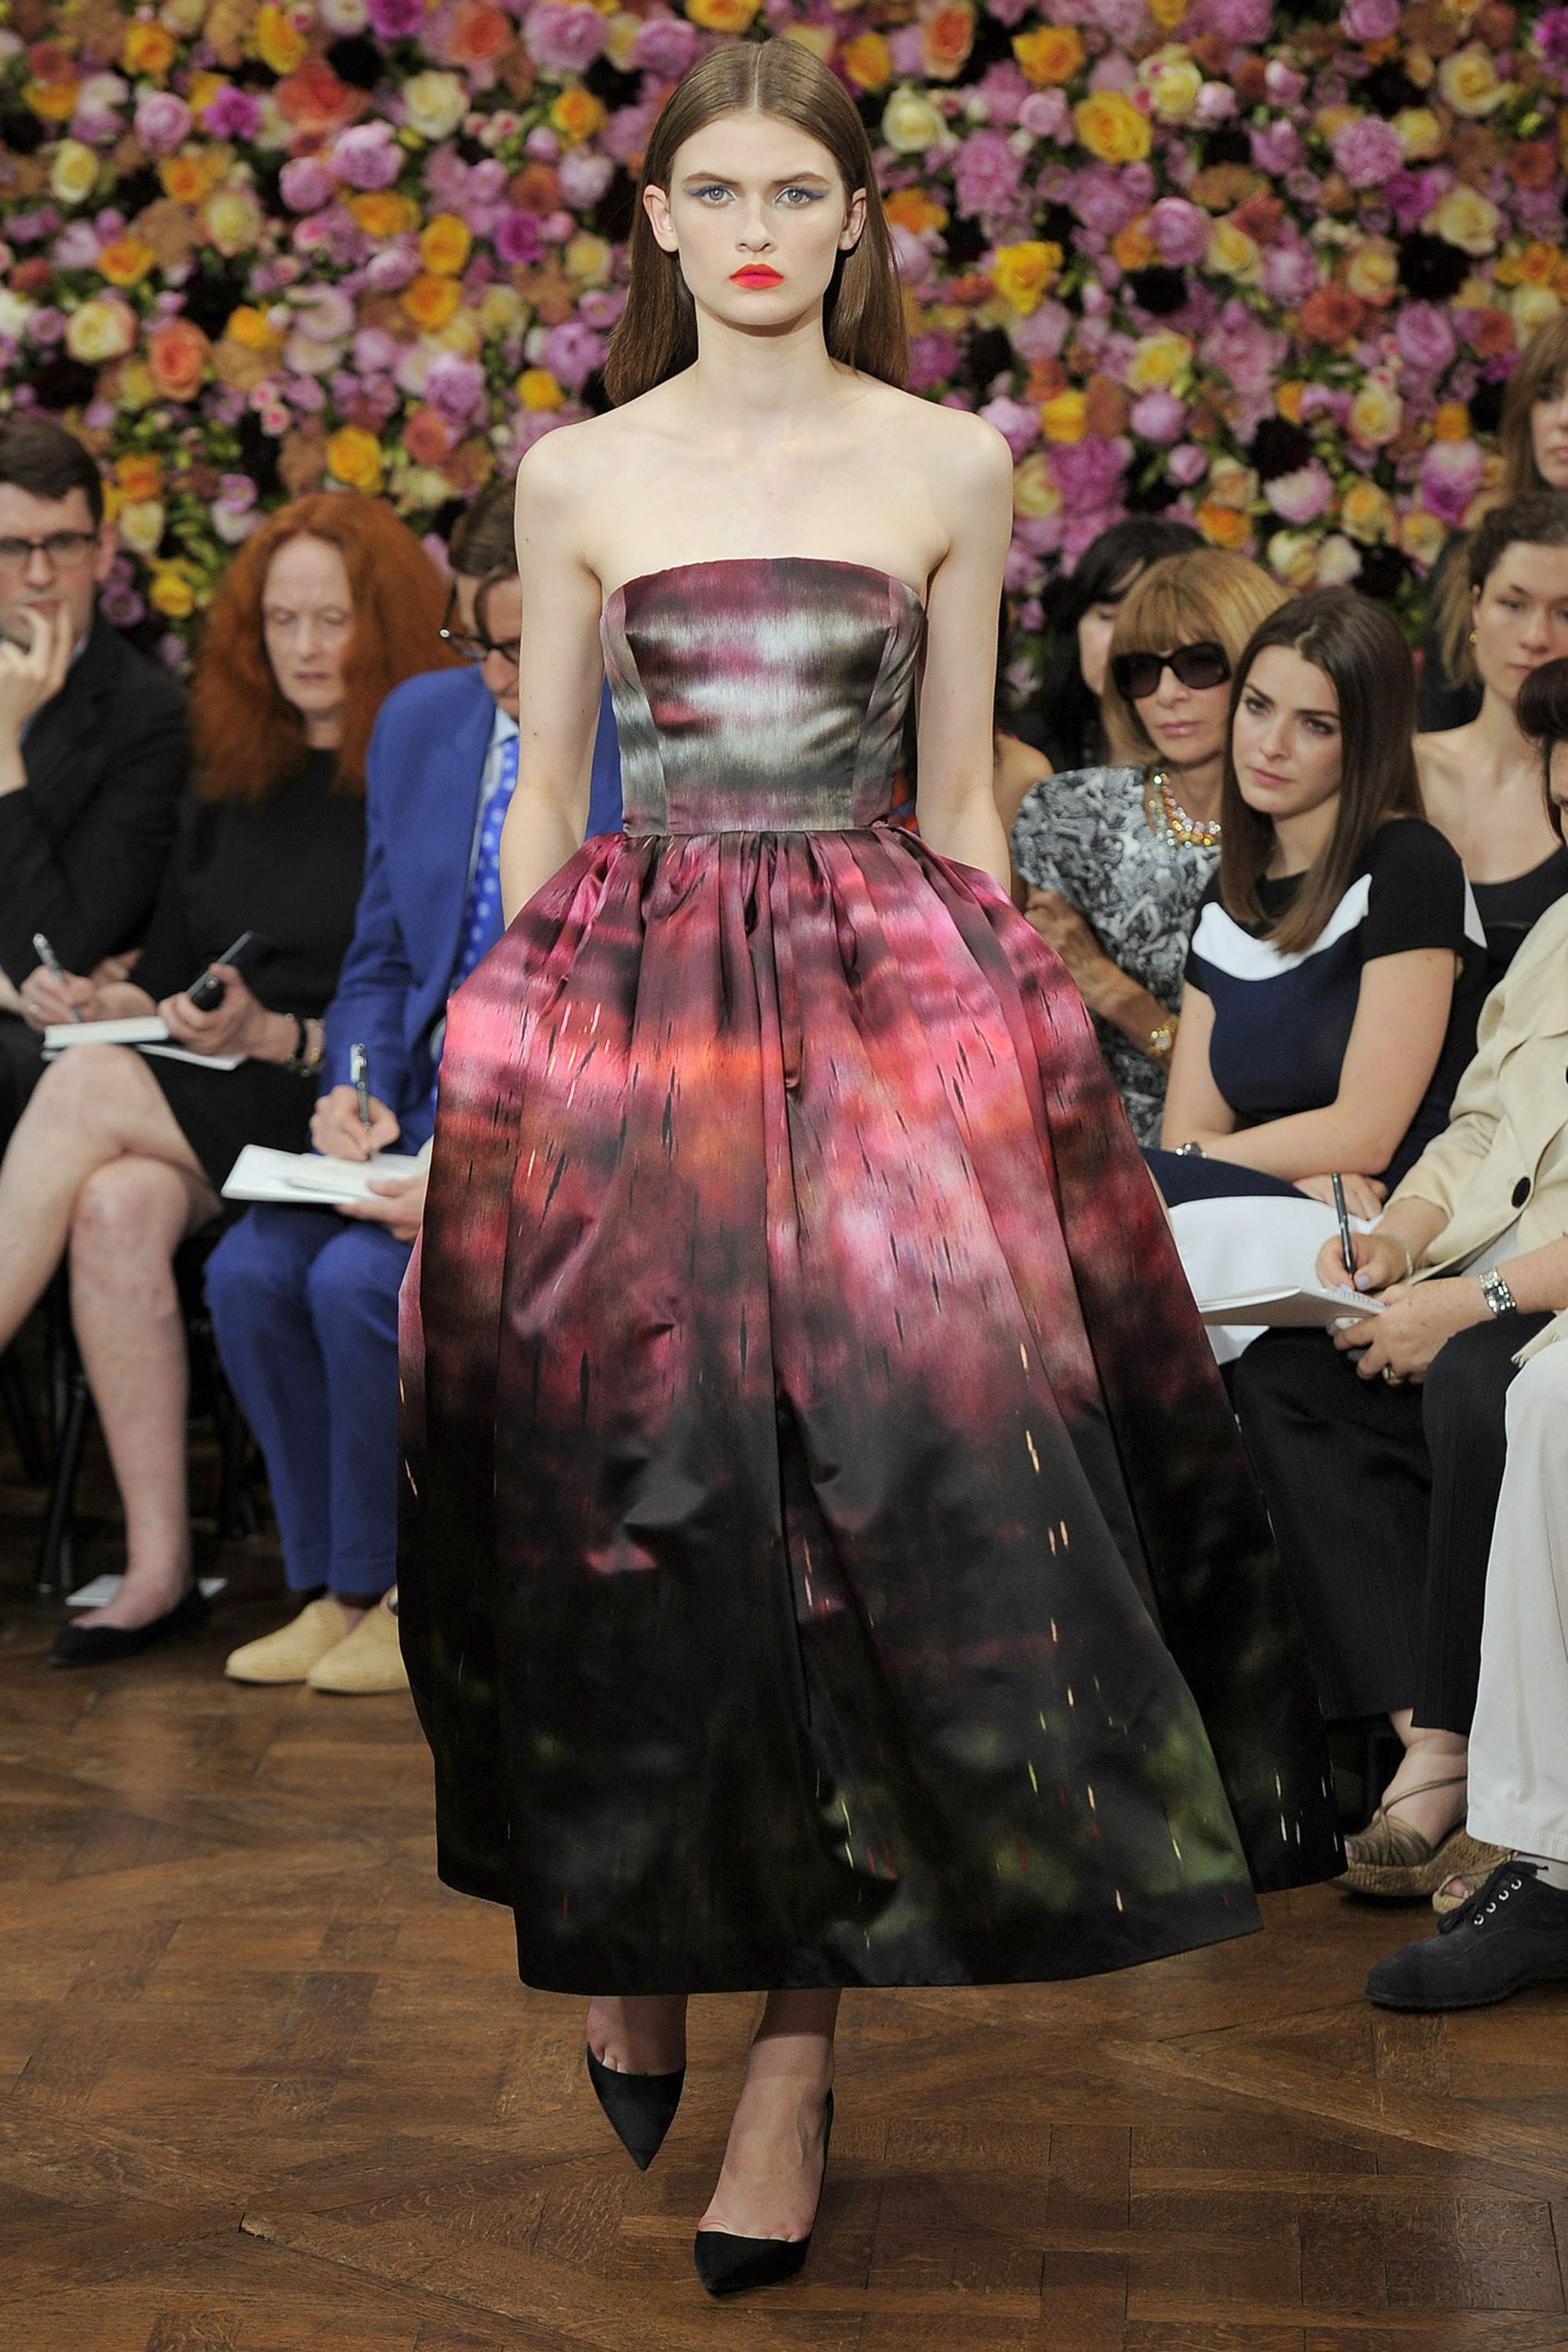 """<p>Before his career in fashion, Monsieur Dior <a href=""""http://www.dior.com/couture/en_us/the-house-of-dior/the-story-of-dior/christian-dior-and-artists"""" target=""""_blank"""">owned a small art gallery</a> that featured the likes of Pablo Picasso, Salvador Dalí and Georges Braques, to name a few. Today, Raf Simons continues to link the house of Dior to the art world. For his very first show as creative director, Simons <a href=""""https://news.artnet.com/people/raf-simons-turns-sterling-rubys-art-haute-couture-new-dior-documentary-282835"""" target=""""_blank"""">printed works</a> by artist Sterling Ruby on couture gowns.</p>"""